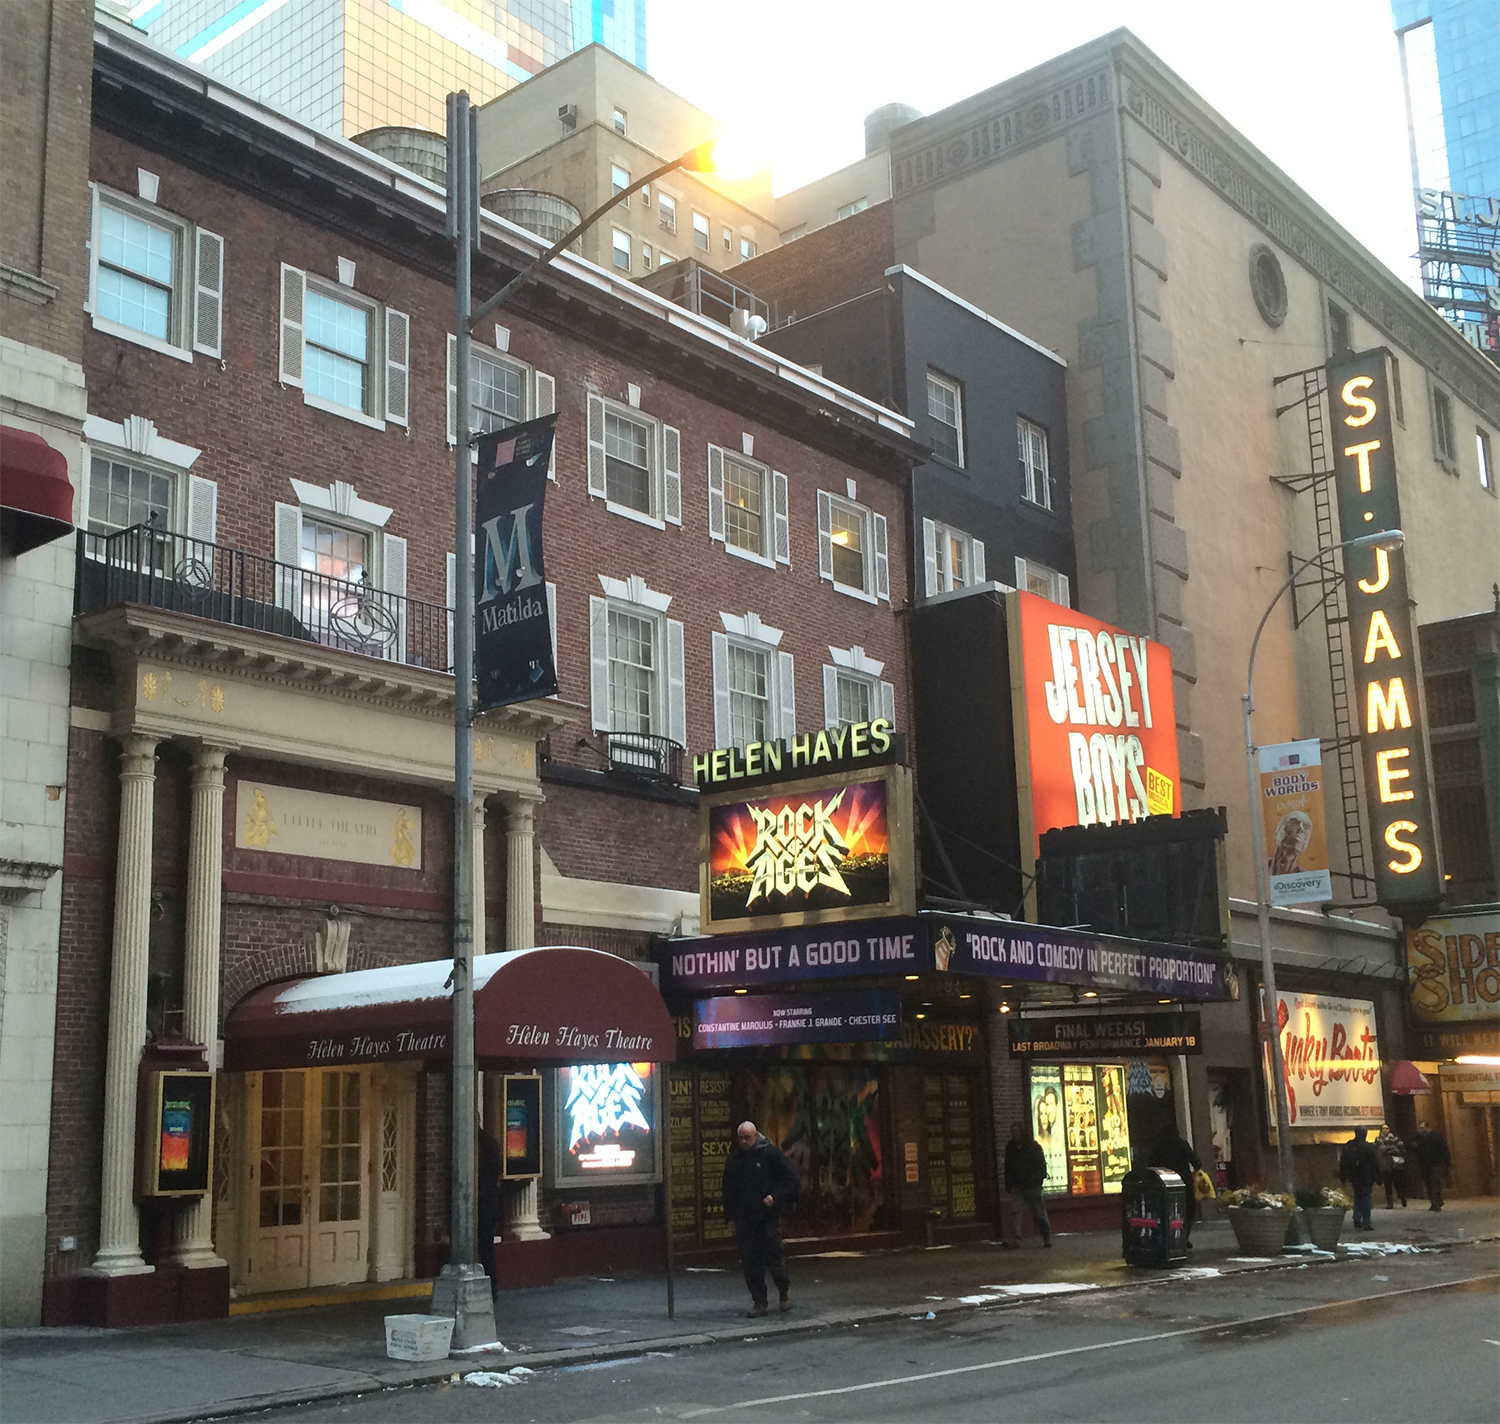 Recent conditions at the Helen Hayes Theater.